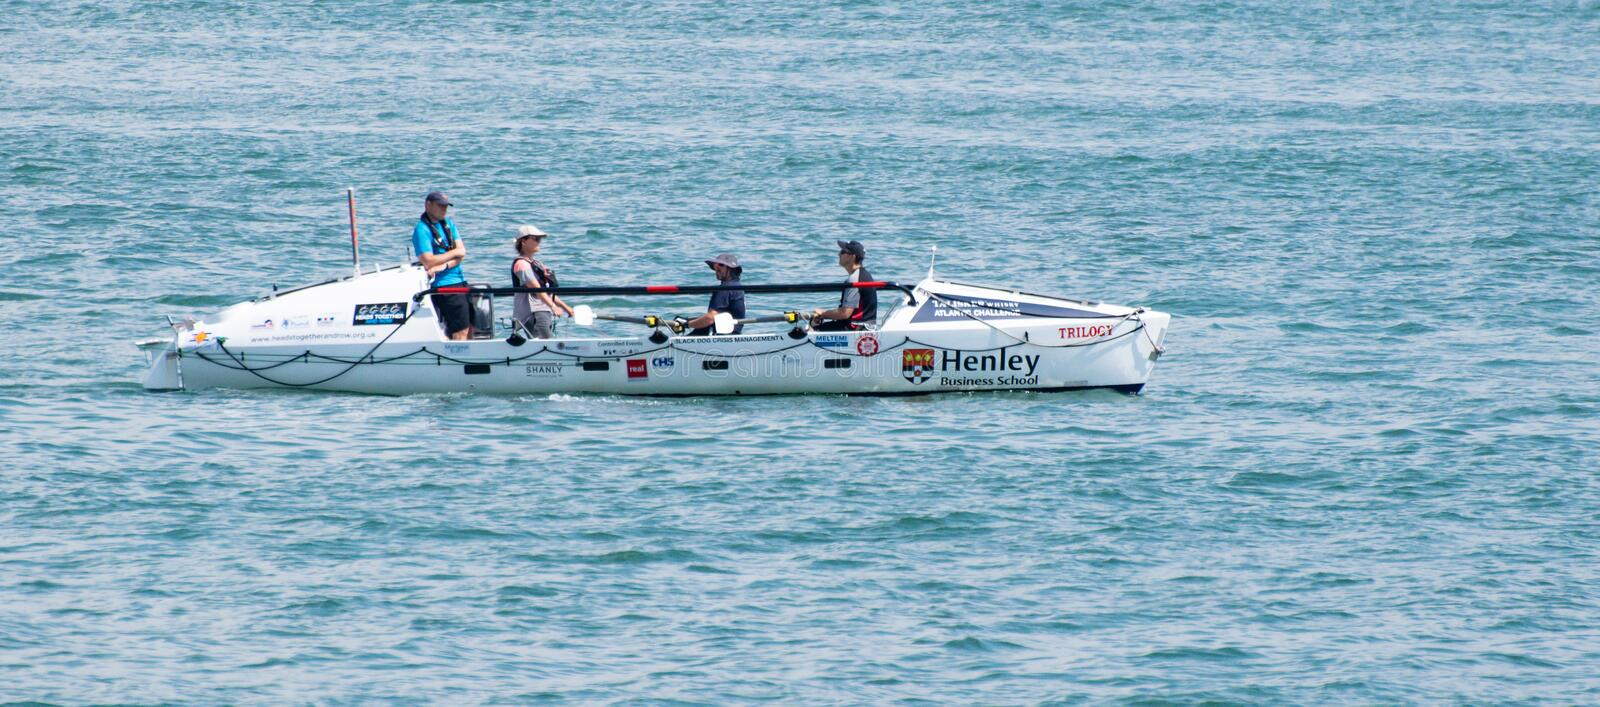 Trilogy Rowing boat. Calshot, United Kingdom - July 21 2018: A rowing boat called Trilogy sponsored by Henley Business school rows into the Solent stock image